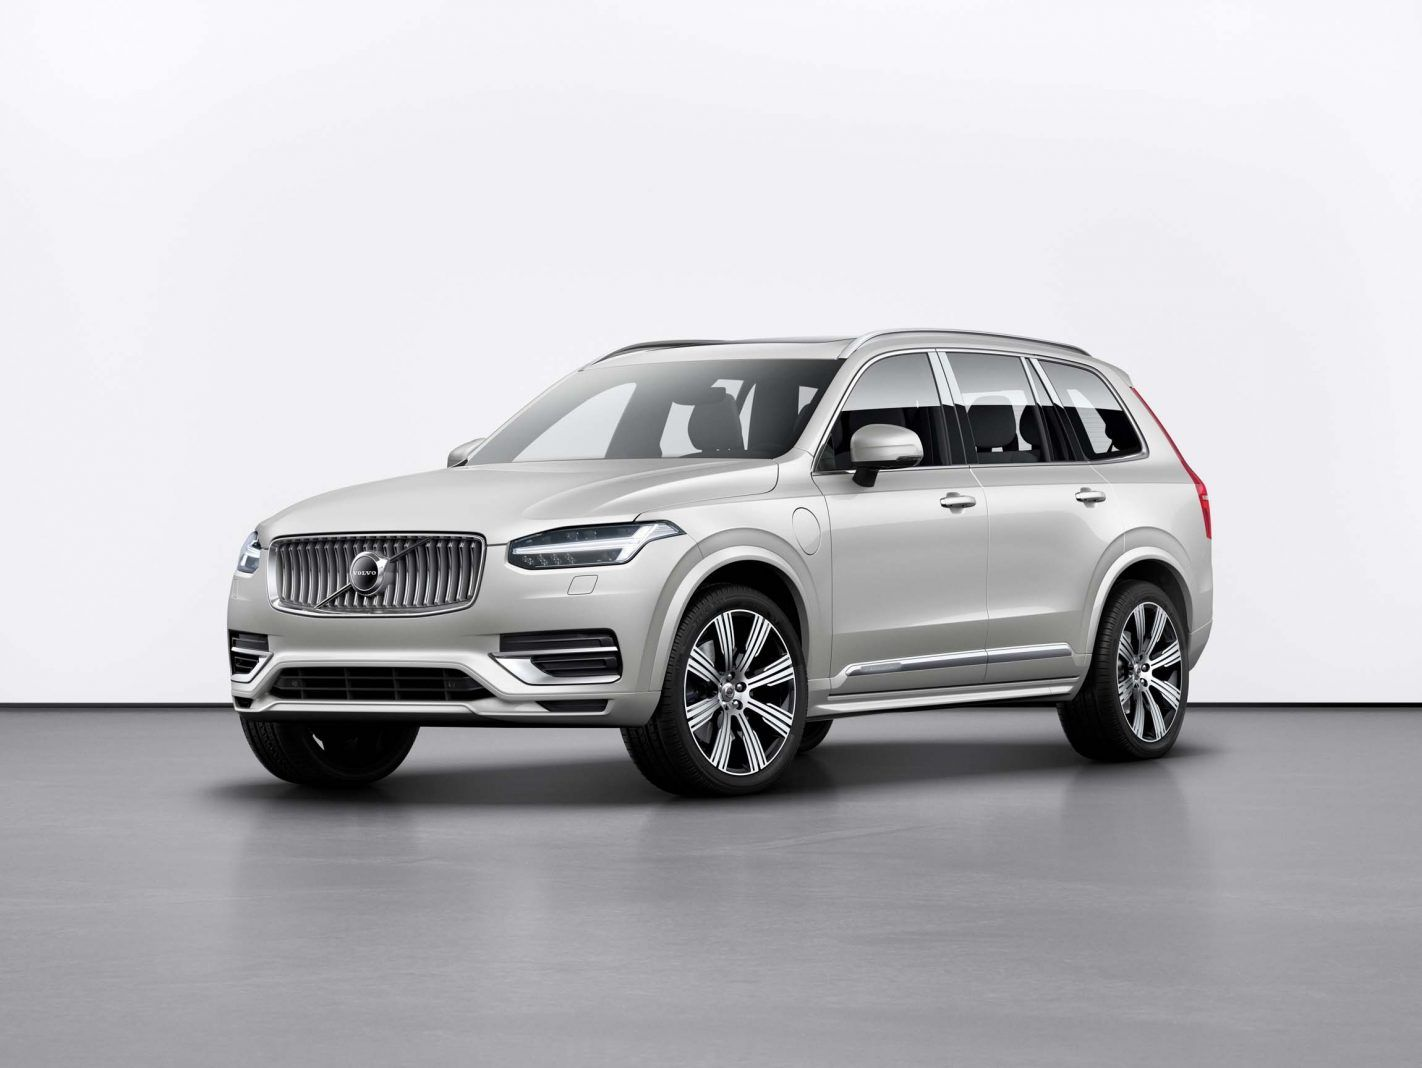 The New 2020 Volvo Xc90 Is The Bellwether Of The Well Known Scandinavian Carmaker This 3 Row High End Suv Features Refined Style A Volvo Xc90 Volvo Hybrid Car